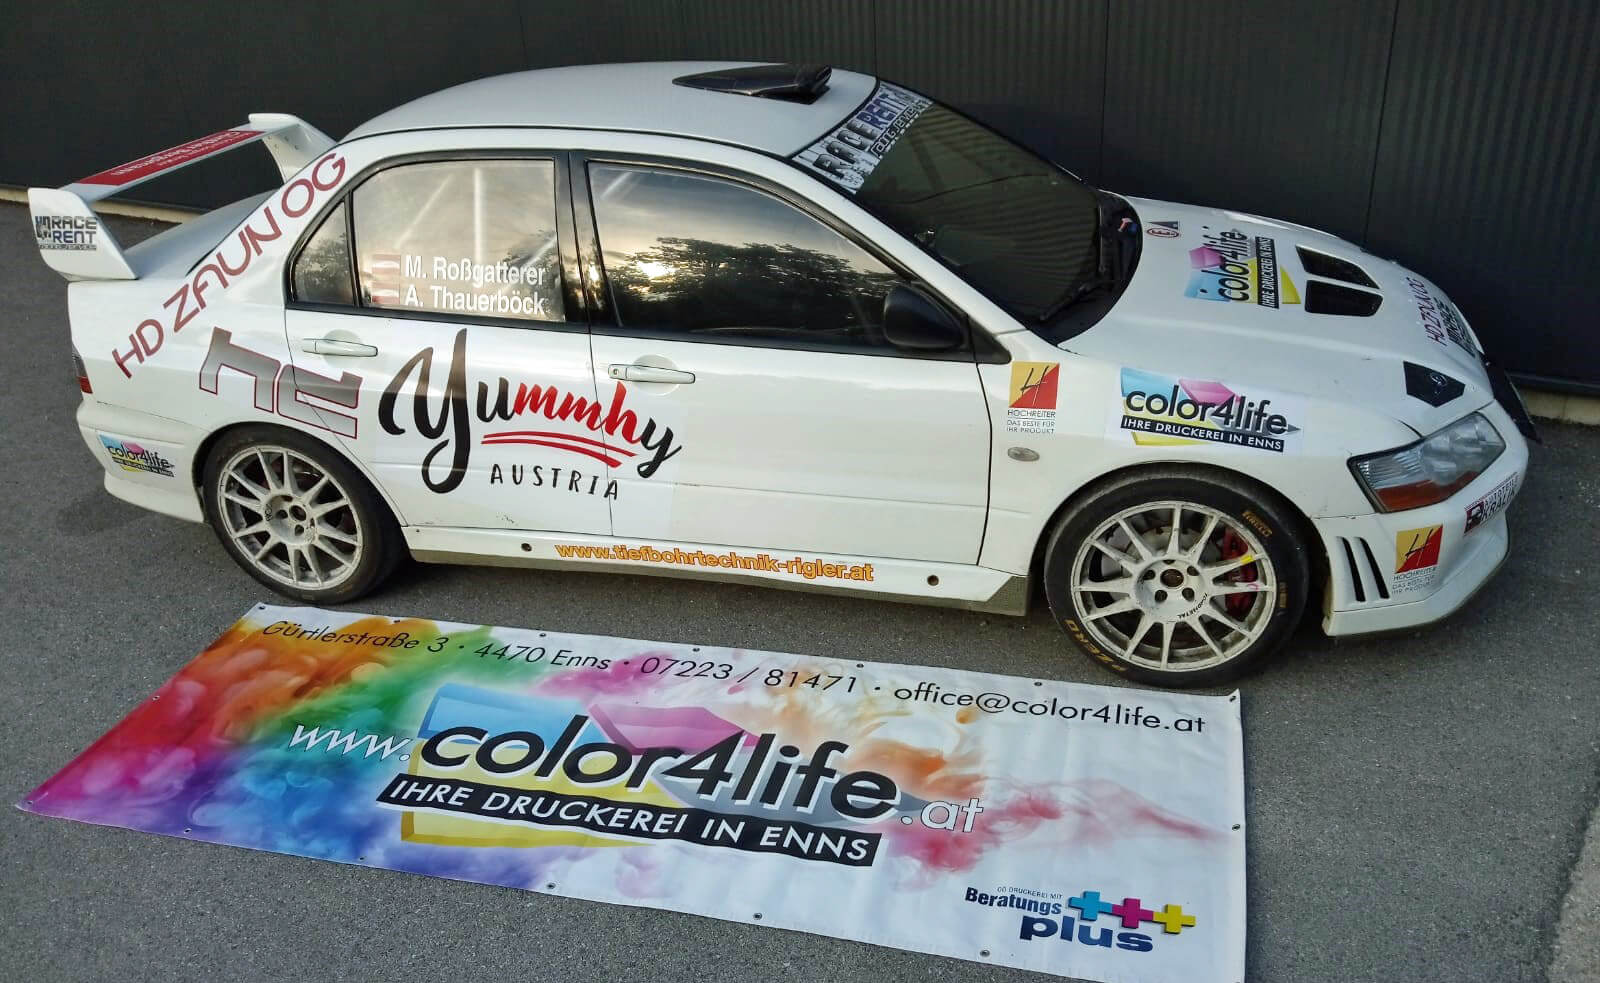 color4life Racing Team Austria 2018: M. Roßgattner & A. Thauerböck